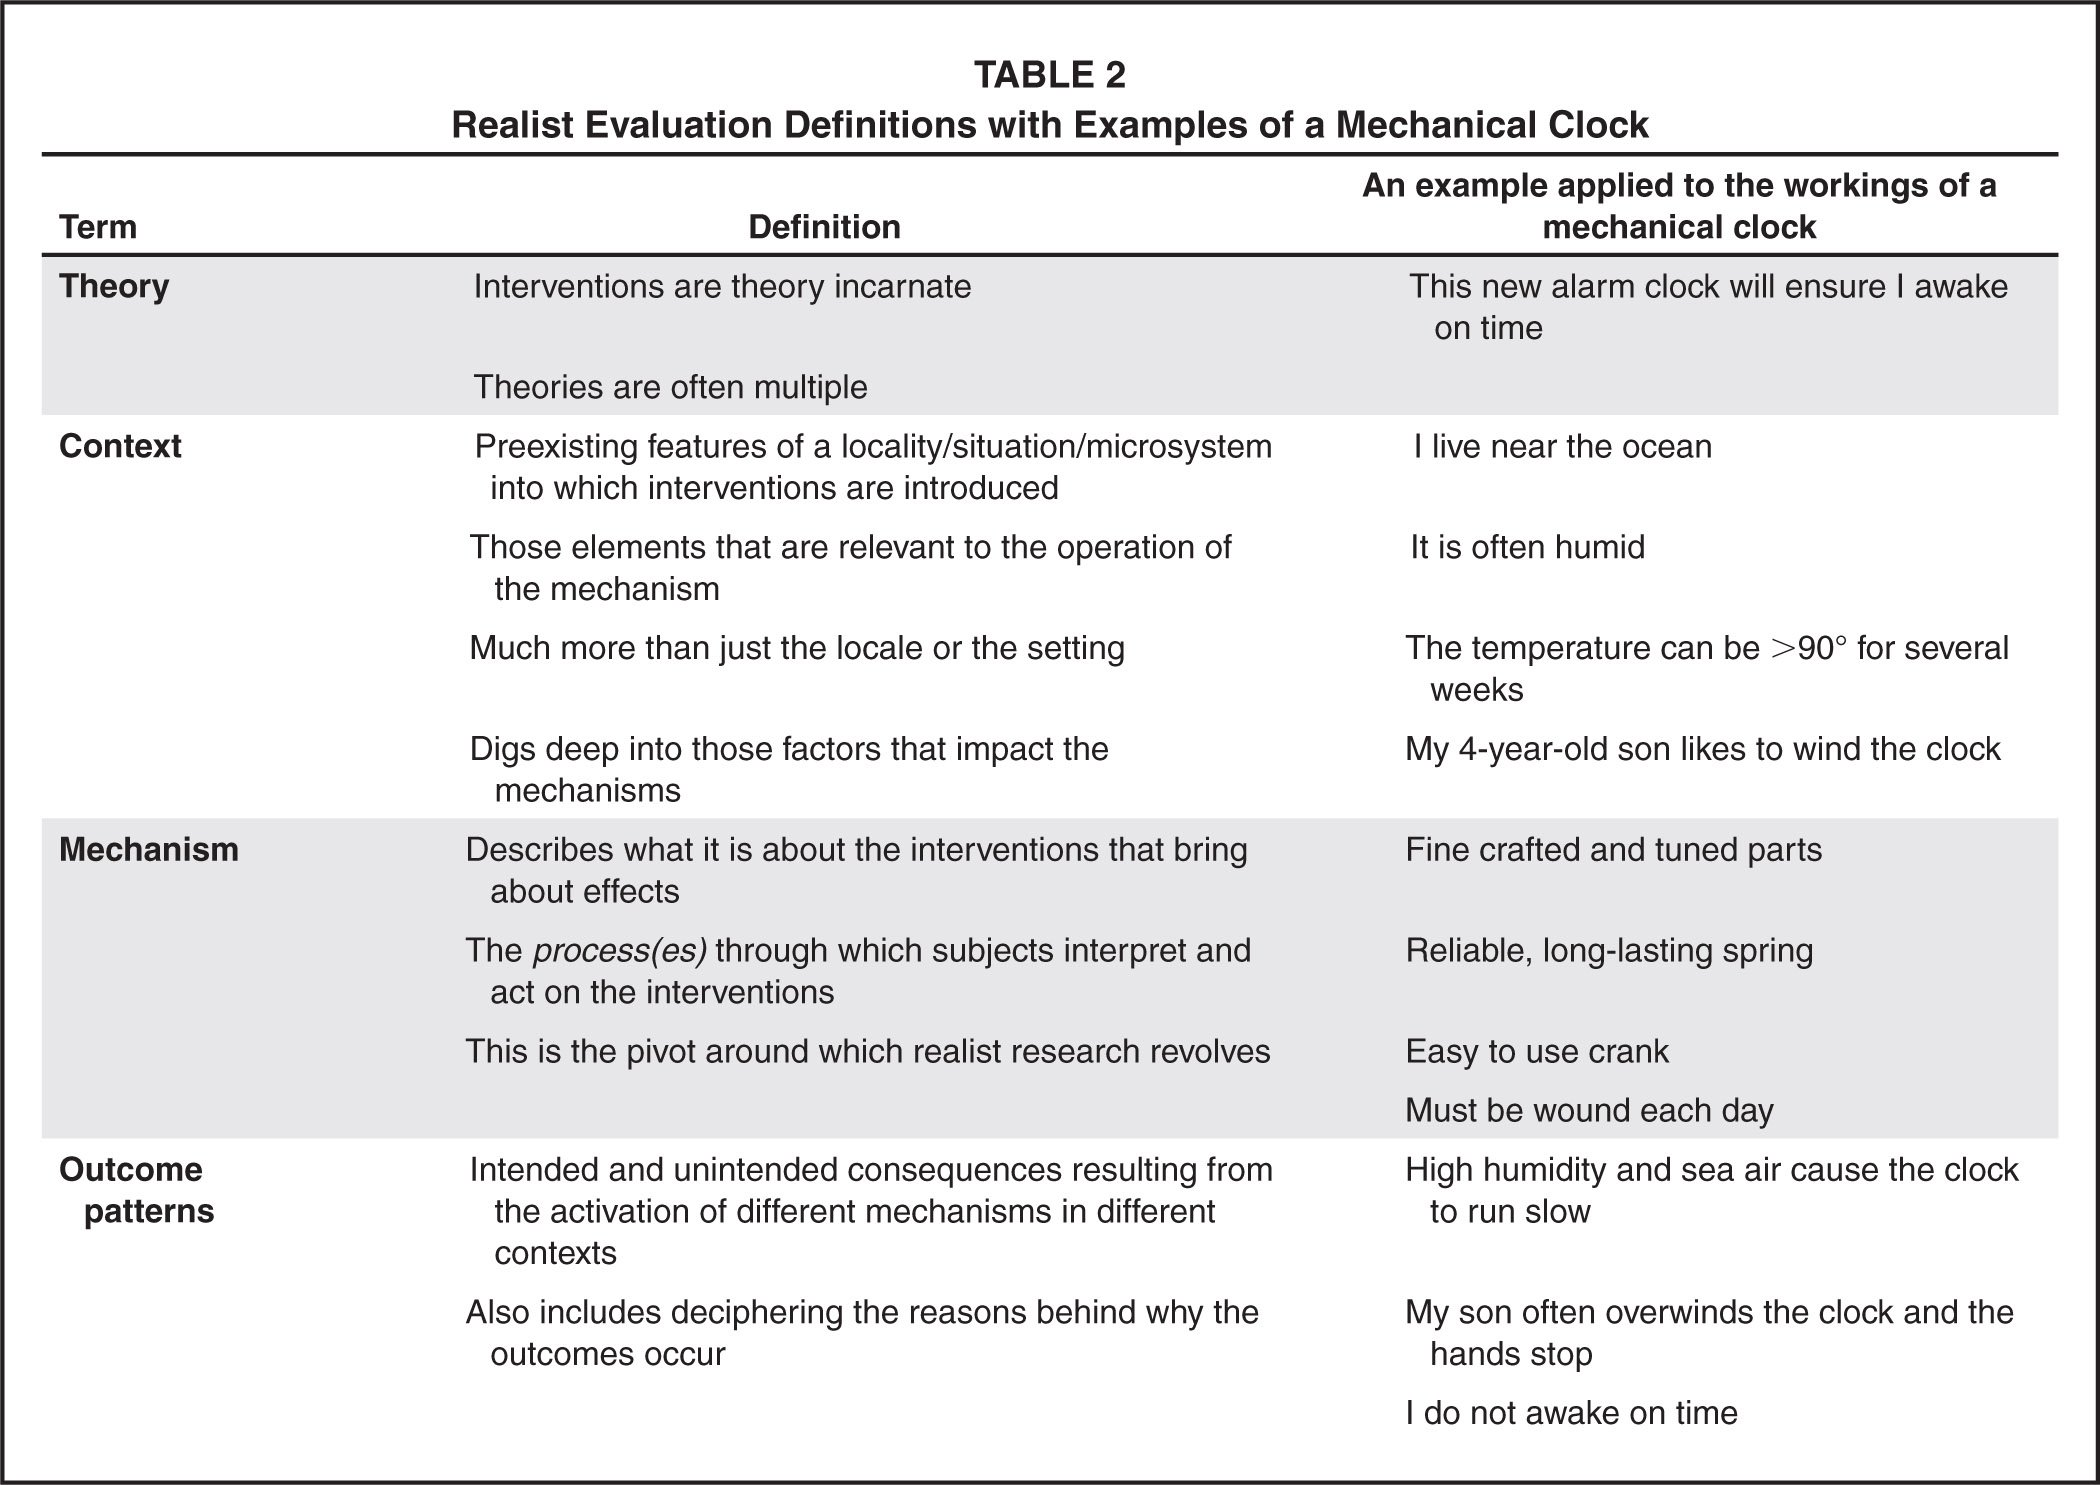 Realist Evaluation Definitions with Examples of a Mechanical Clock